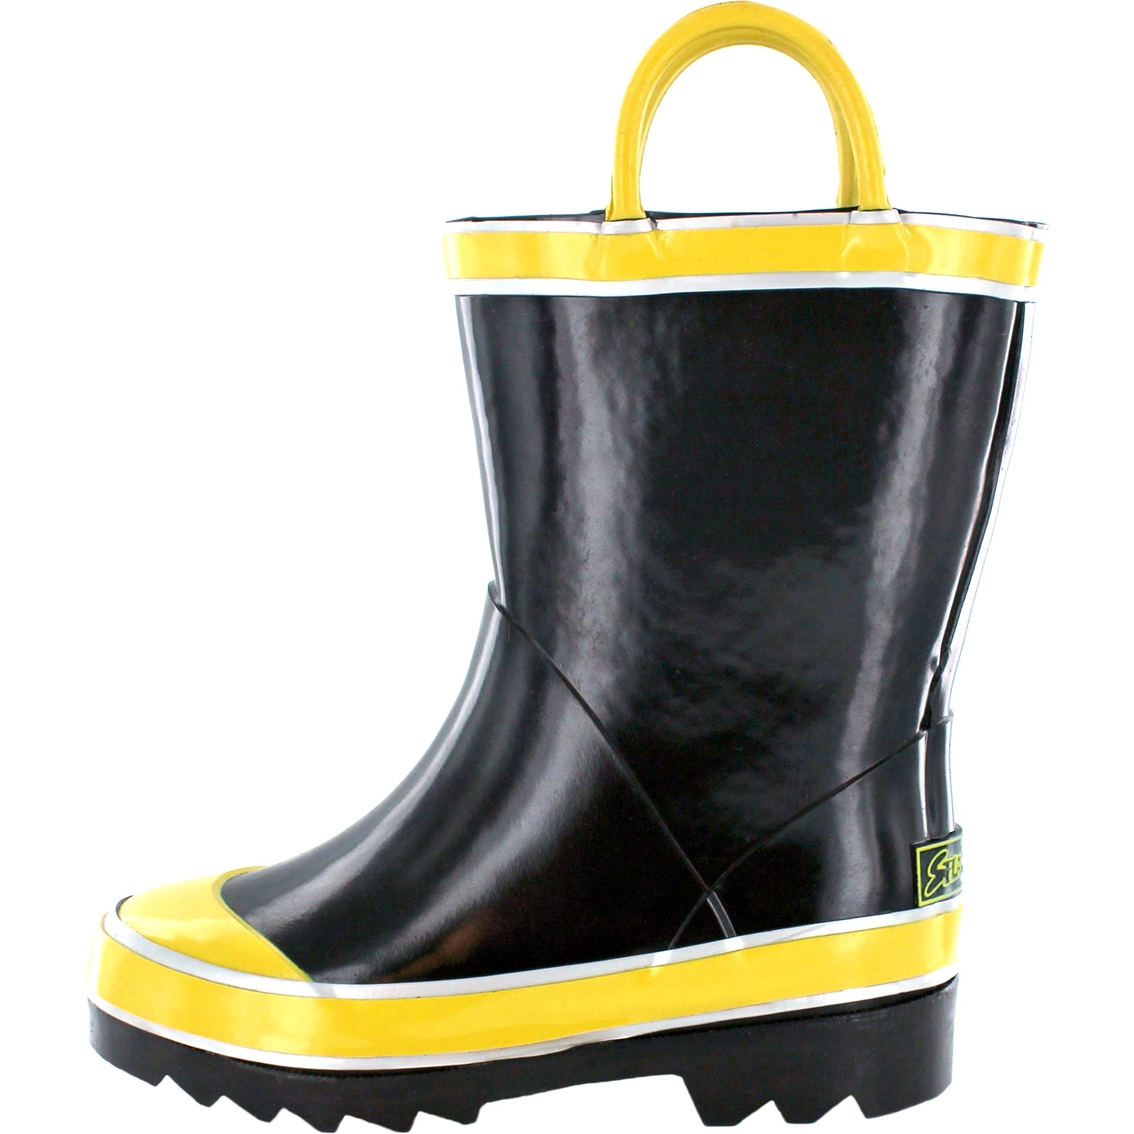 c22484118d82 Rain Shoes For Kids - Image Of Shoes